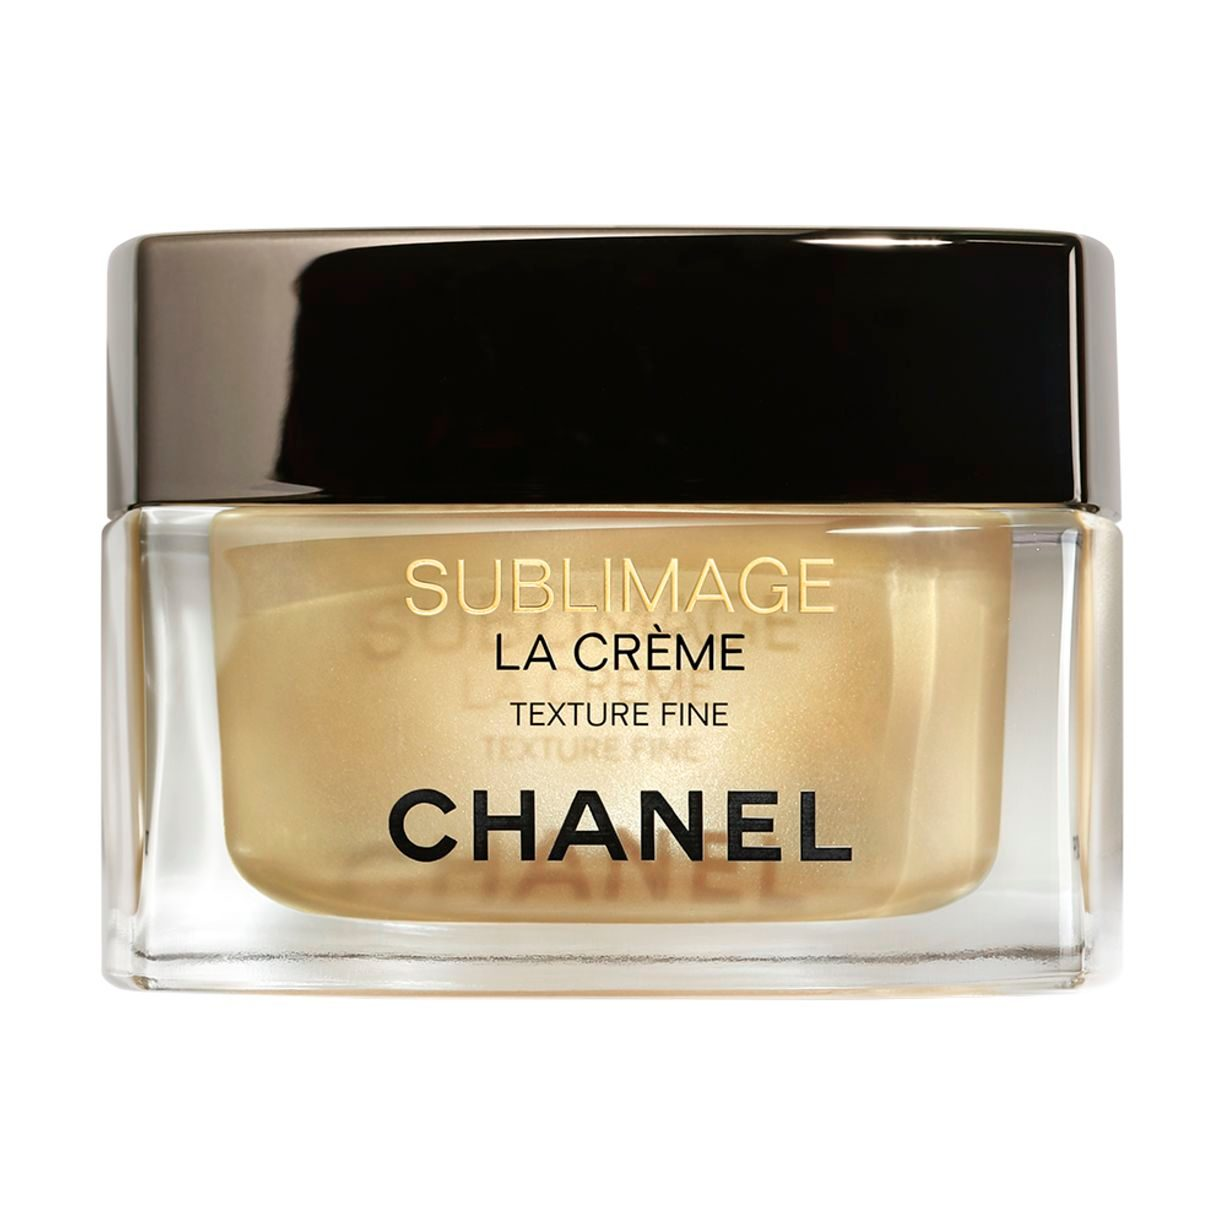 SUBLIMAGE LA CRÈME ULTIMATE SKIN REVITALISATION - TEXTURE FINE